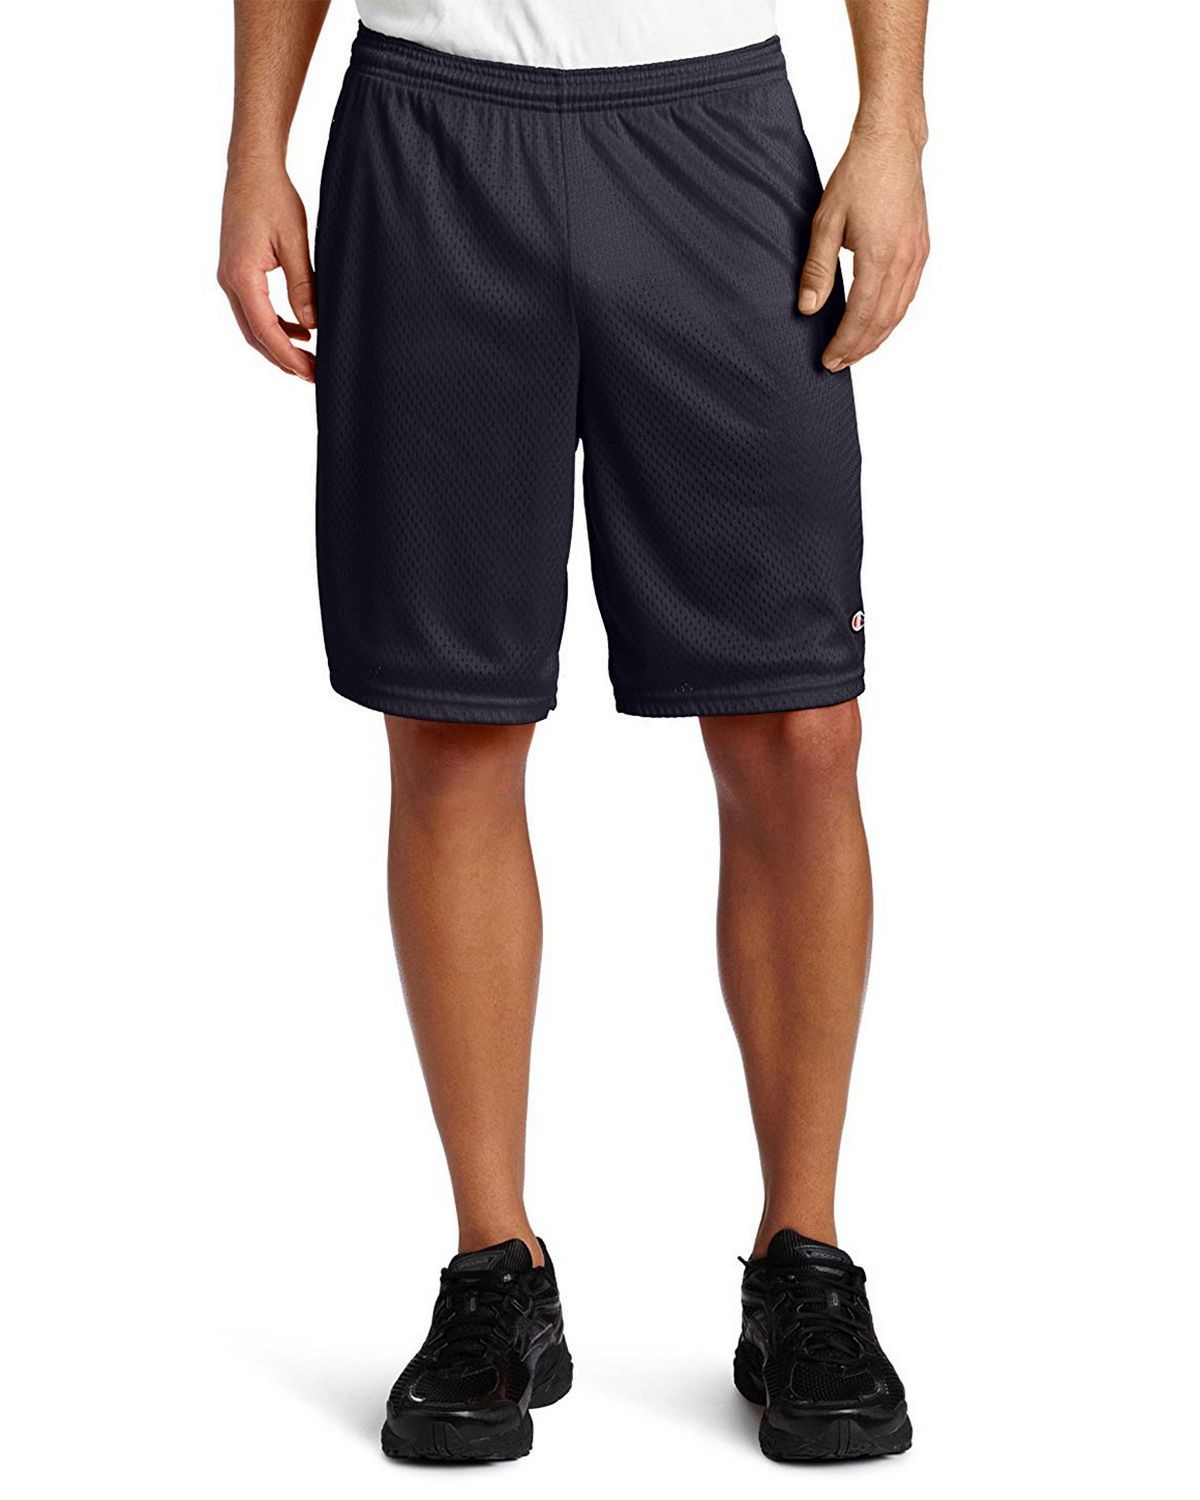 Champion S162 Adult Mesh Short - Navy - M S162